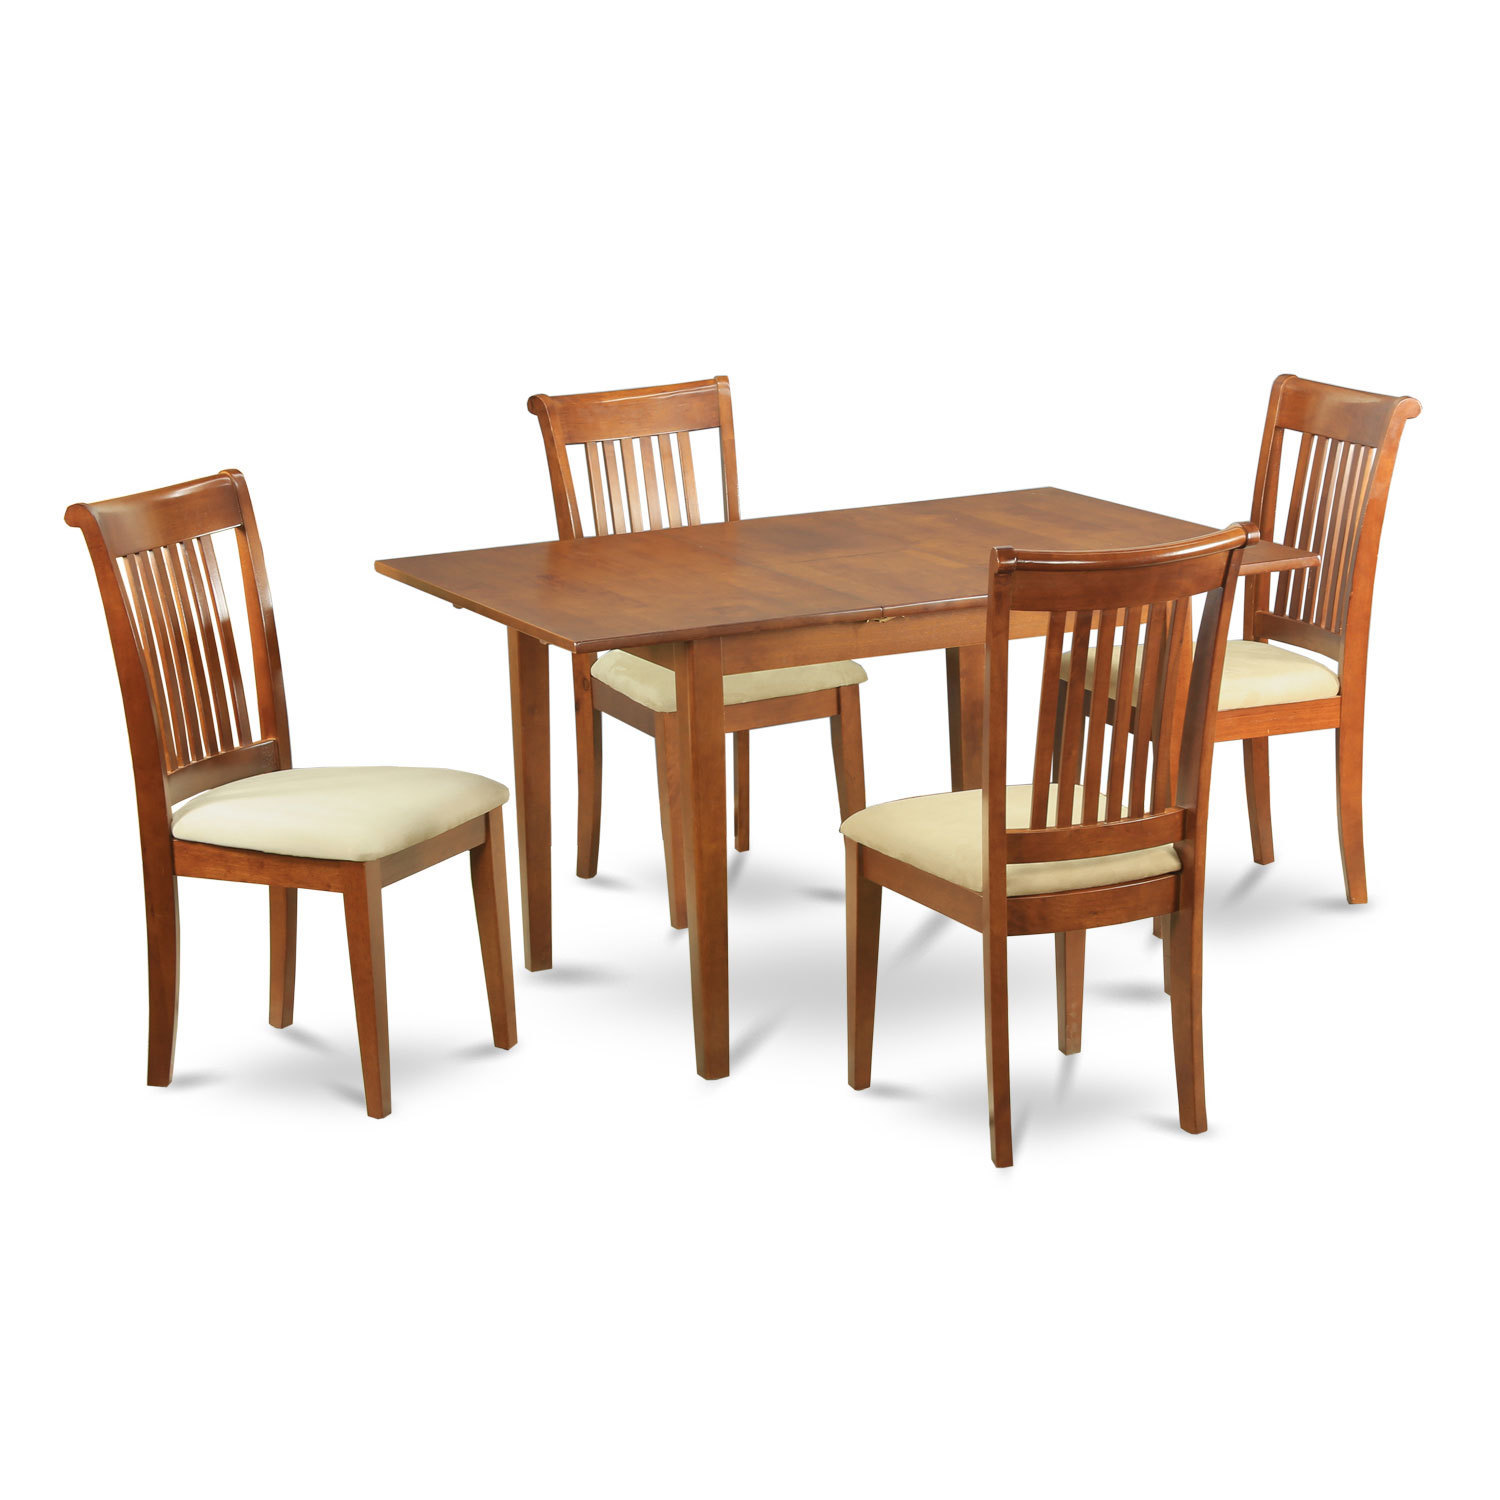 Small dinette set design homesfeed for Small space table and chair set